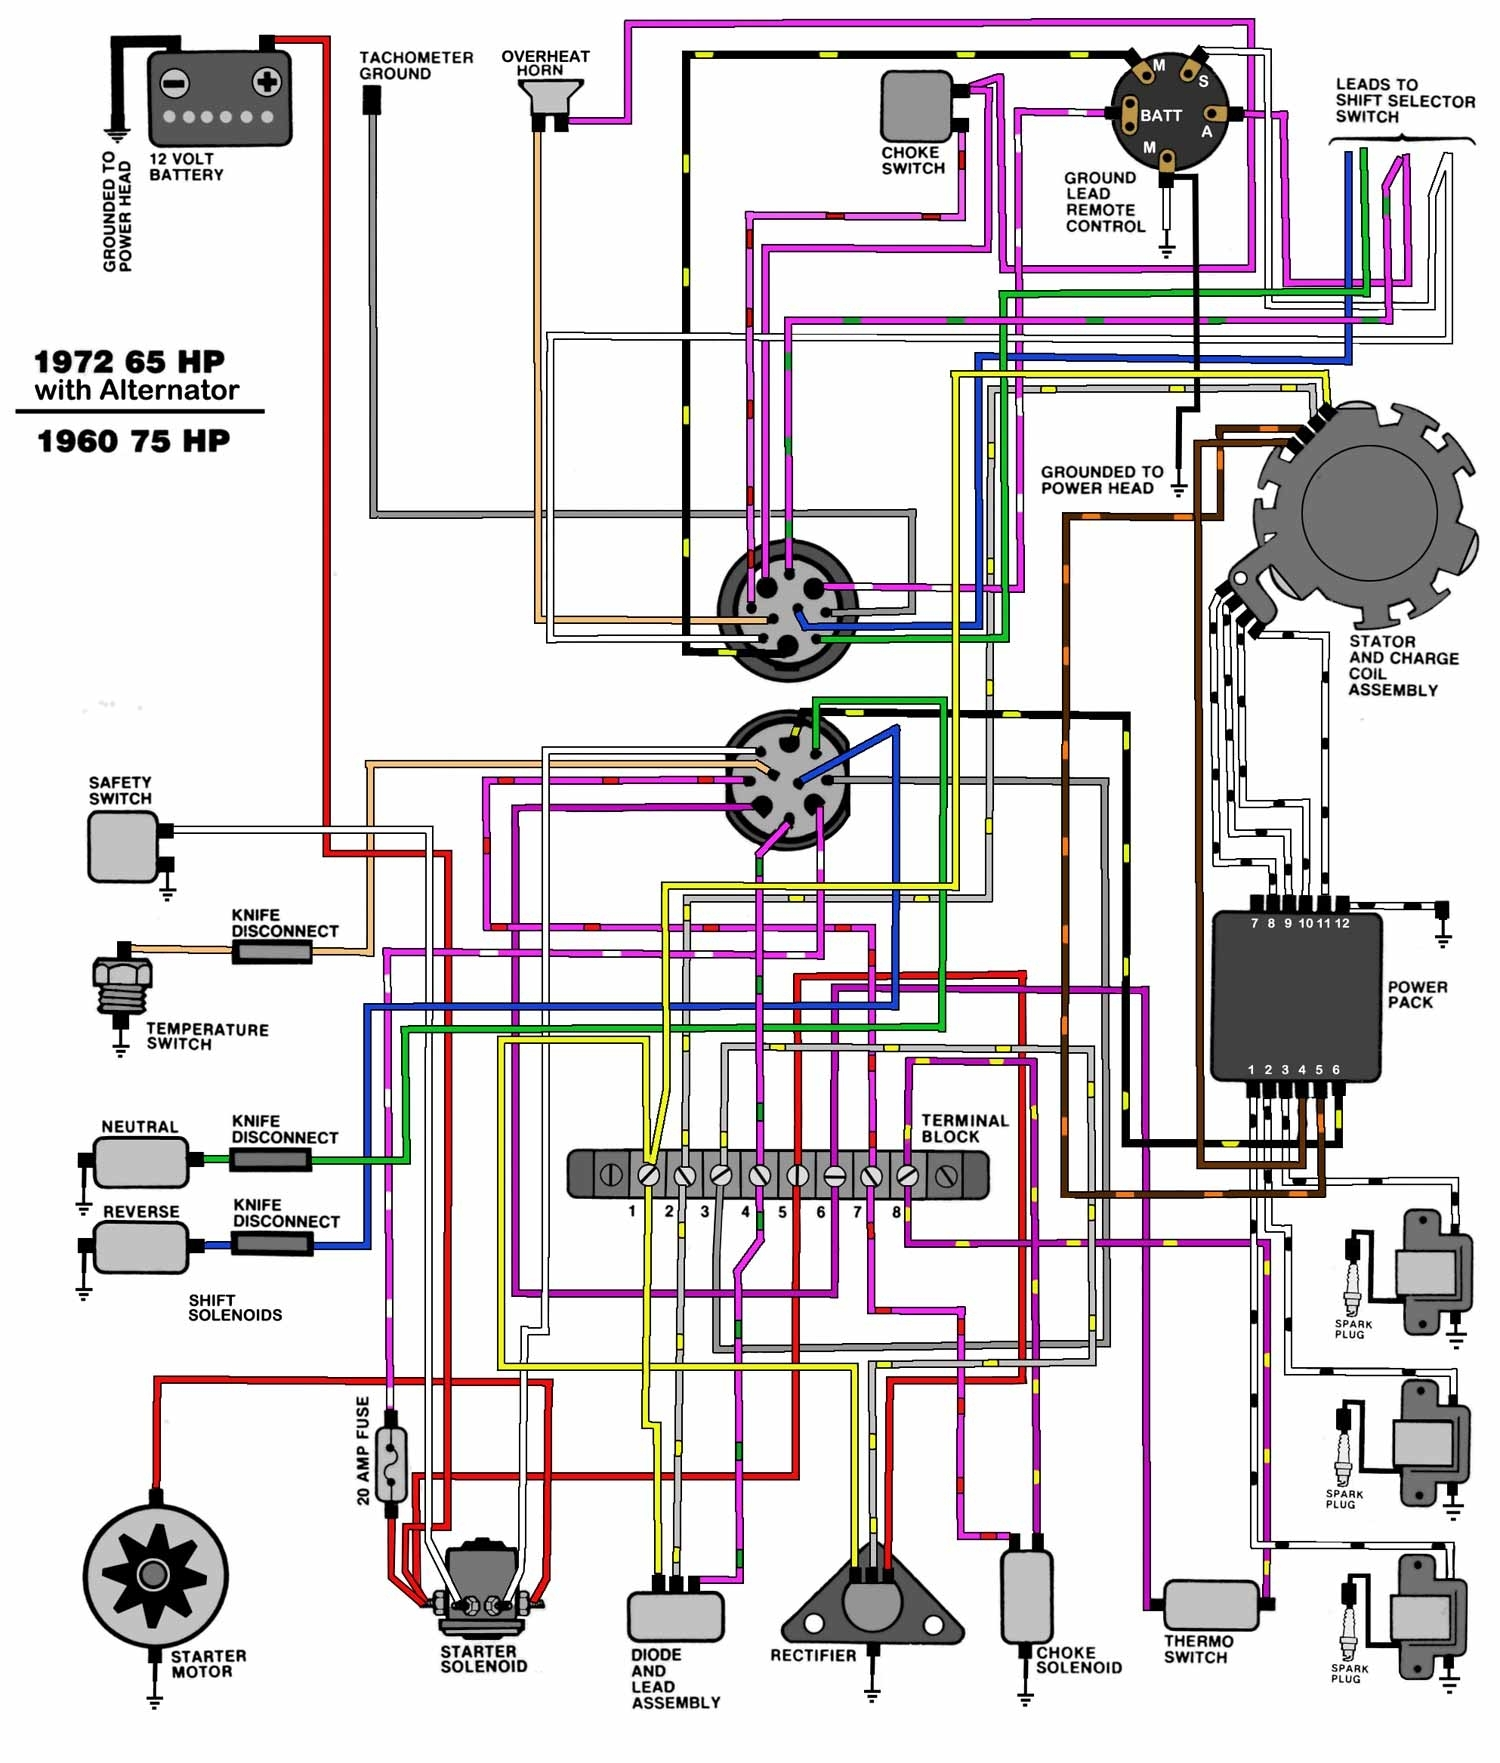 diagrams 560619 johnson engine parts diagram evinrude johnson Toyota 22R Engine Diagram  Kohler Command Engine Wiring Kohler Engine Parts Diagram Engine Diagram